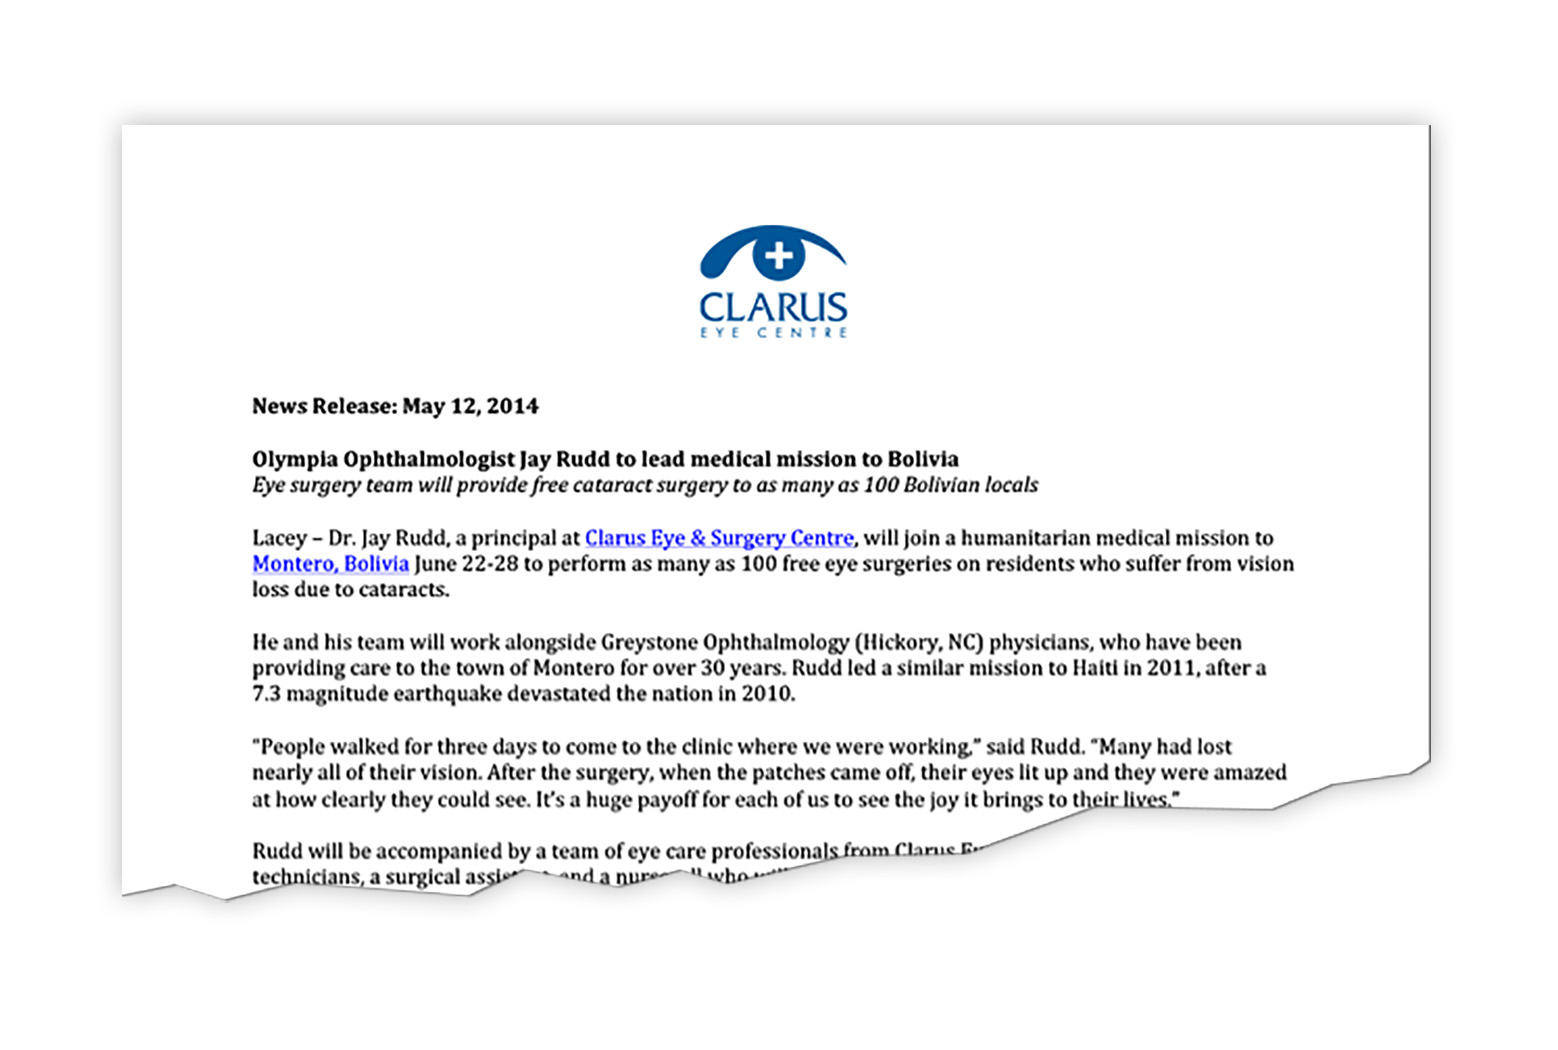 client: Clarus Eye Centre DBC branded Clarus Eye Center in 2004 and has been their advertising and PR agency of record ever since. Clarus co-founder Jay Rudd has participated in several medical missions, including providing care in a clinic in Bolivia, South America. This press release details the purpose and scope of the medical mission.